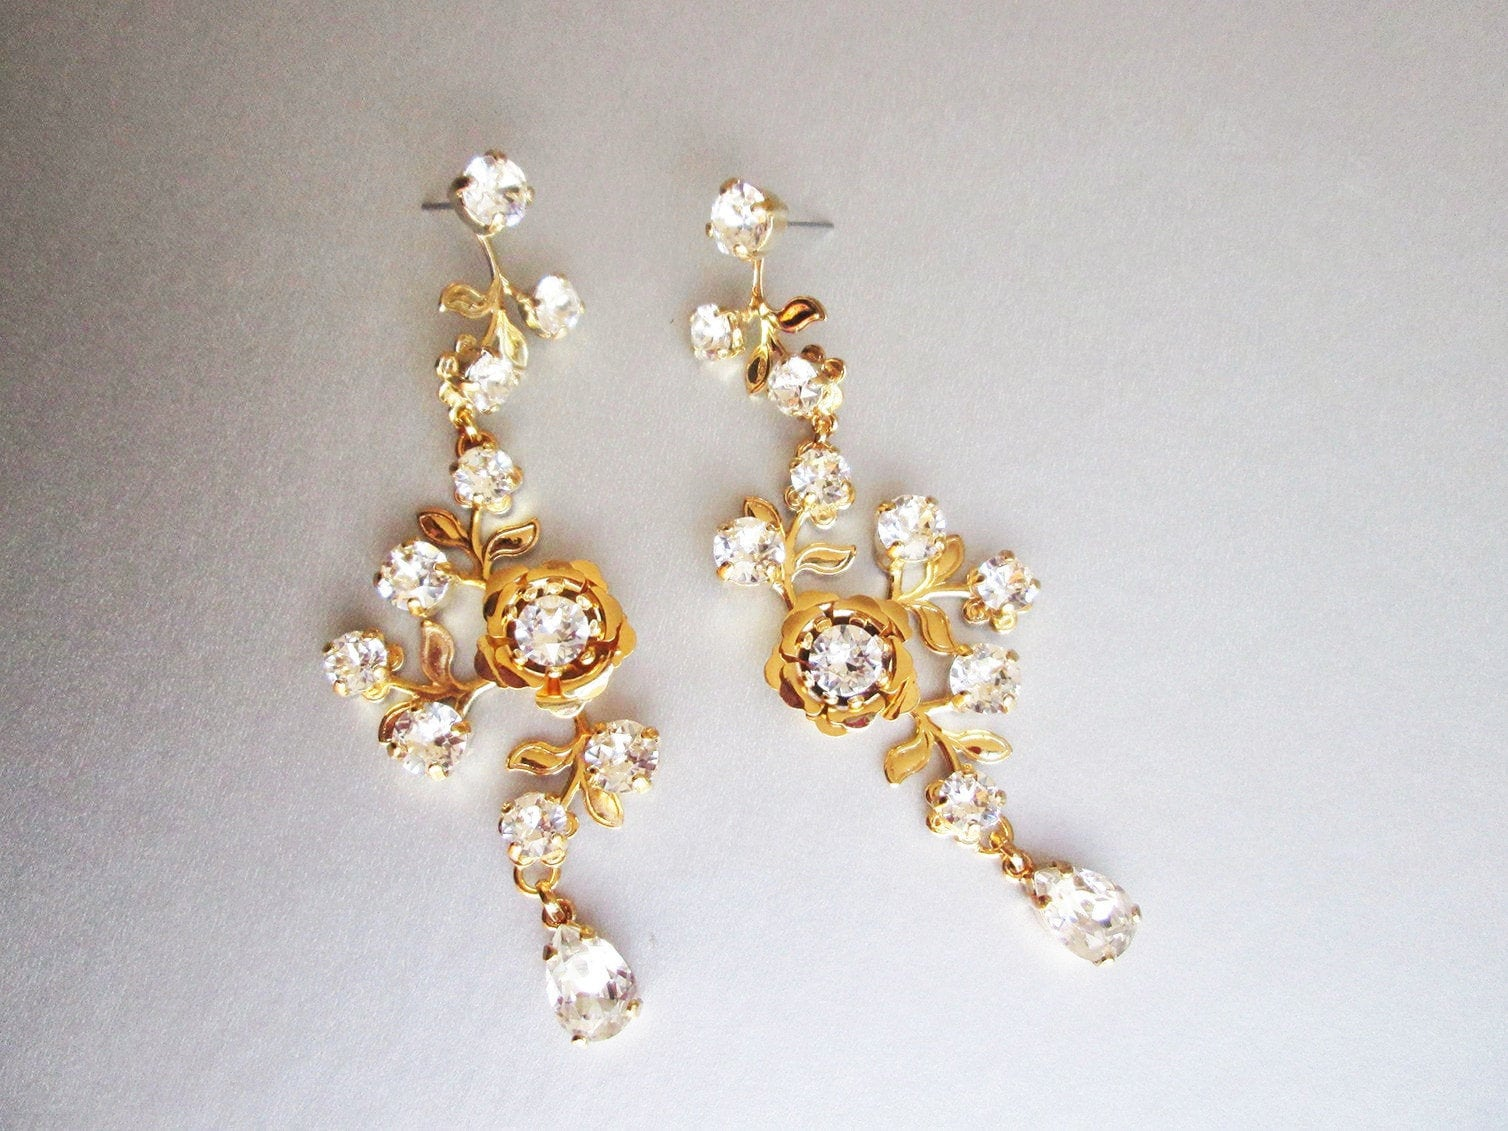 Bridal Swarovski earrings, Vintage style crystal earrings